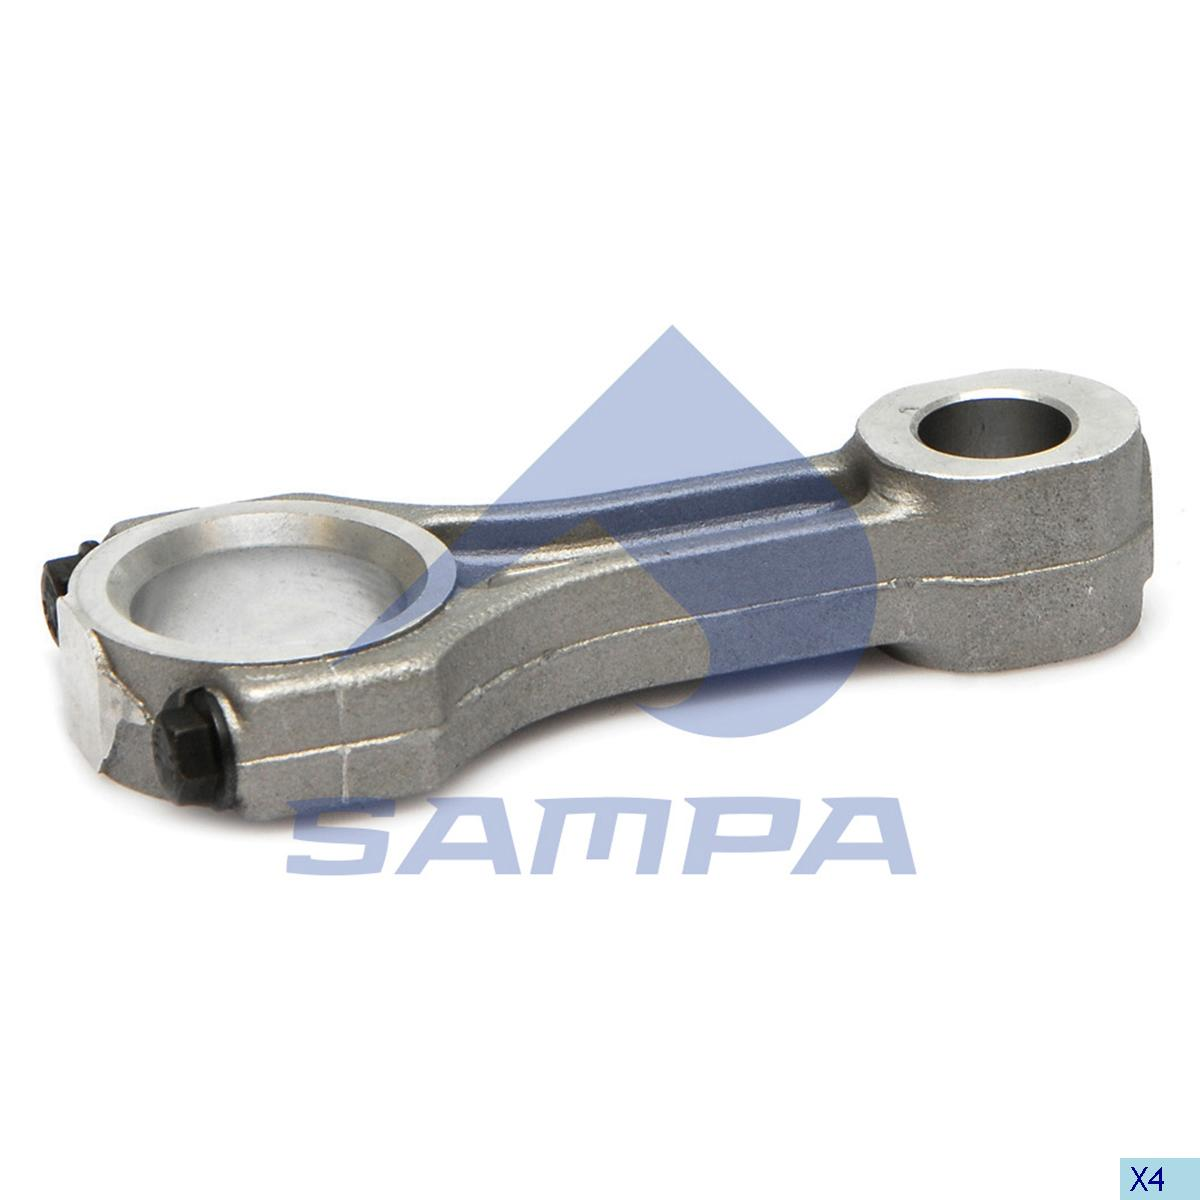 Connecting Rod, Piston, R.V.I., Compressed Air System